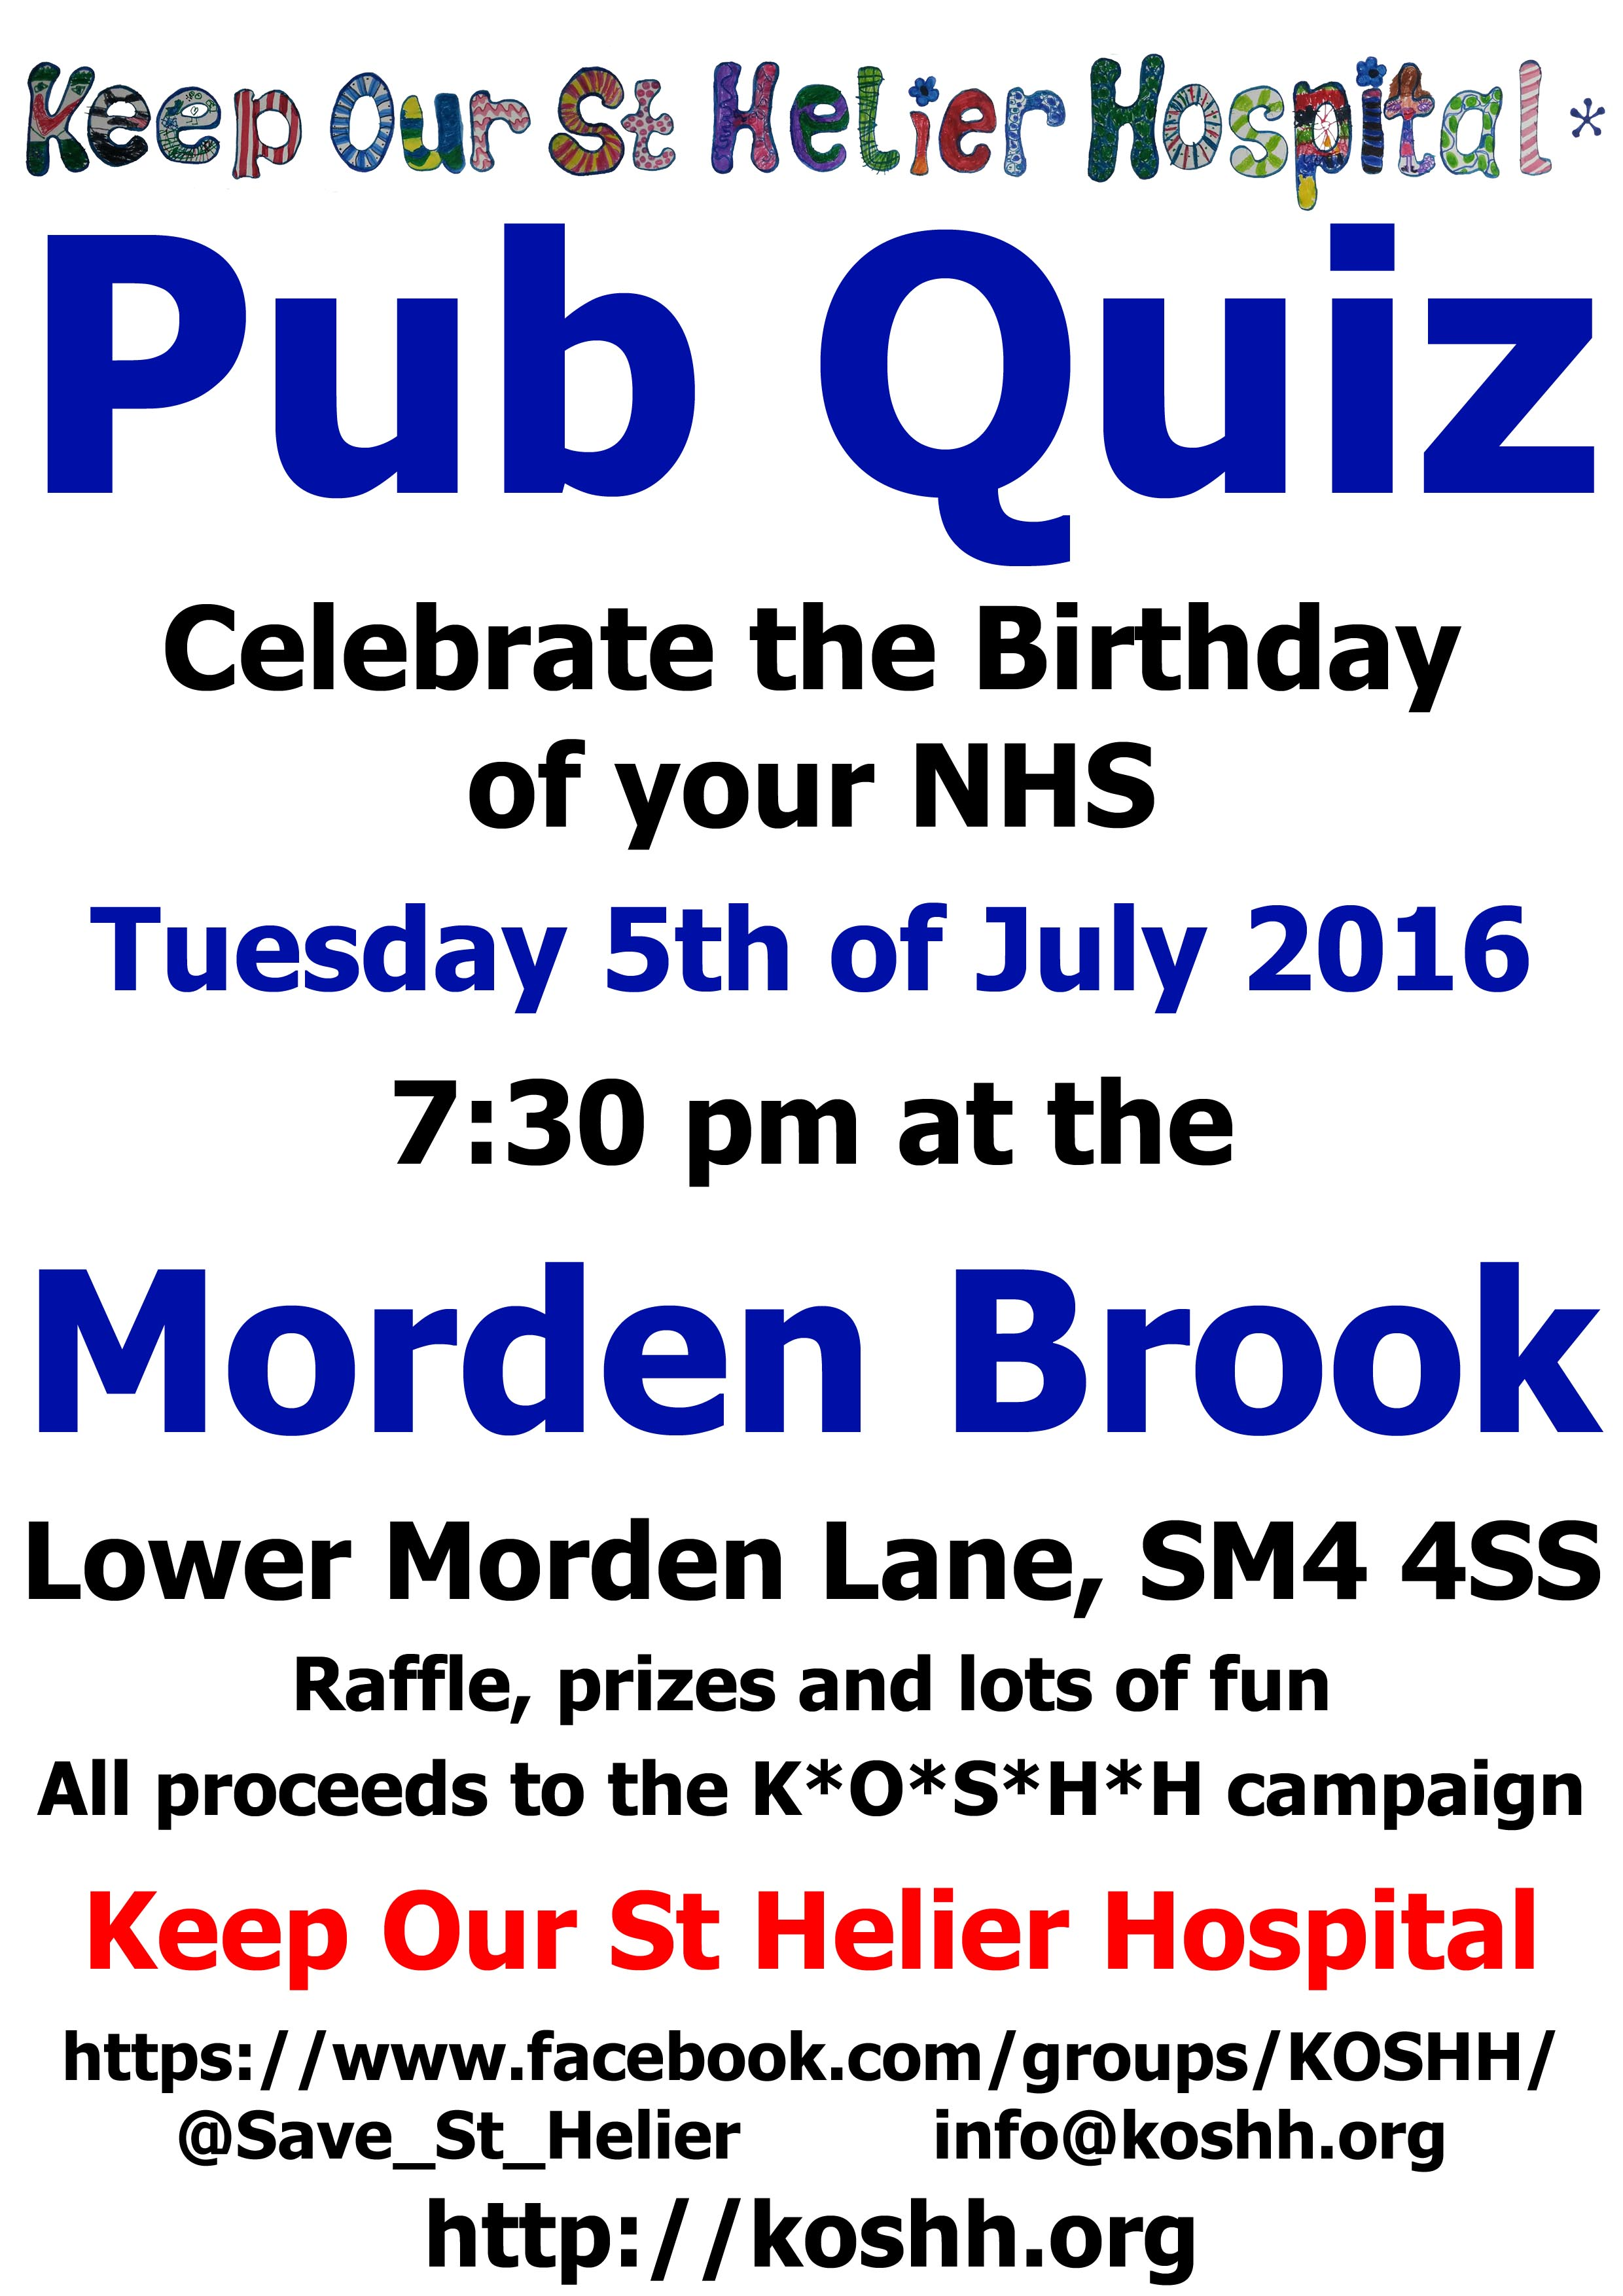 2016 07 05 - KOSHH Pub Quiz Flyer v2.1 copy